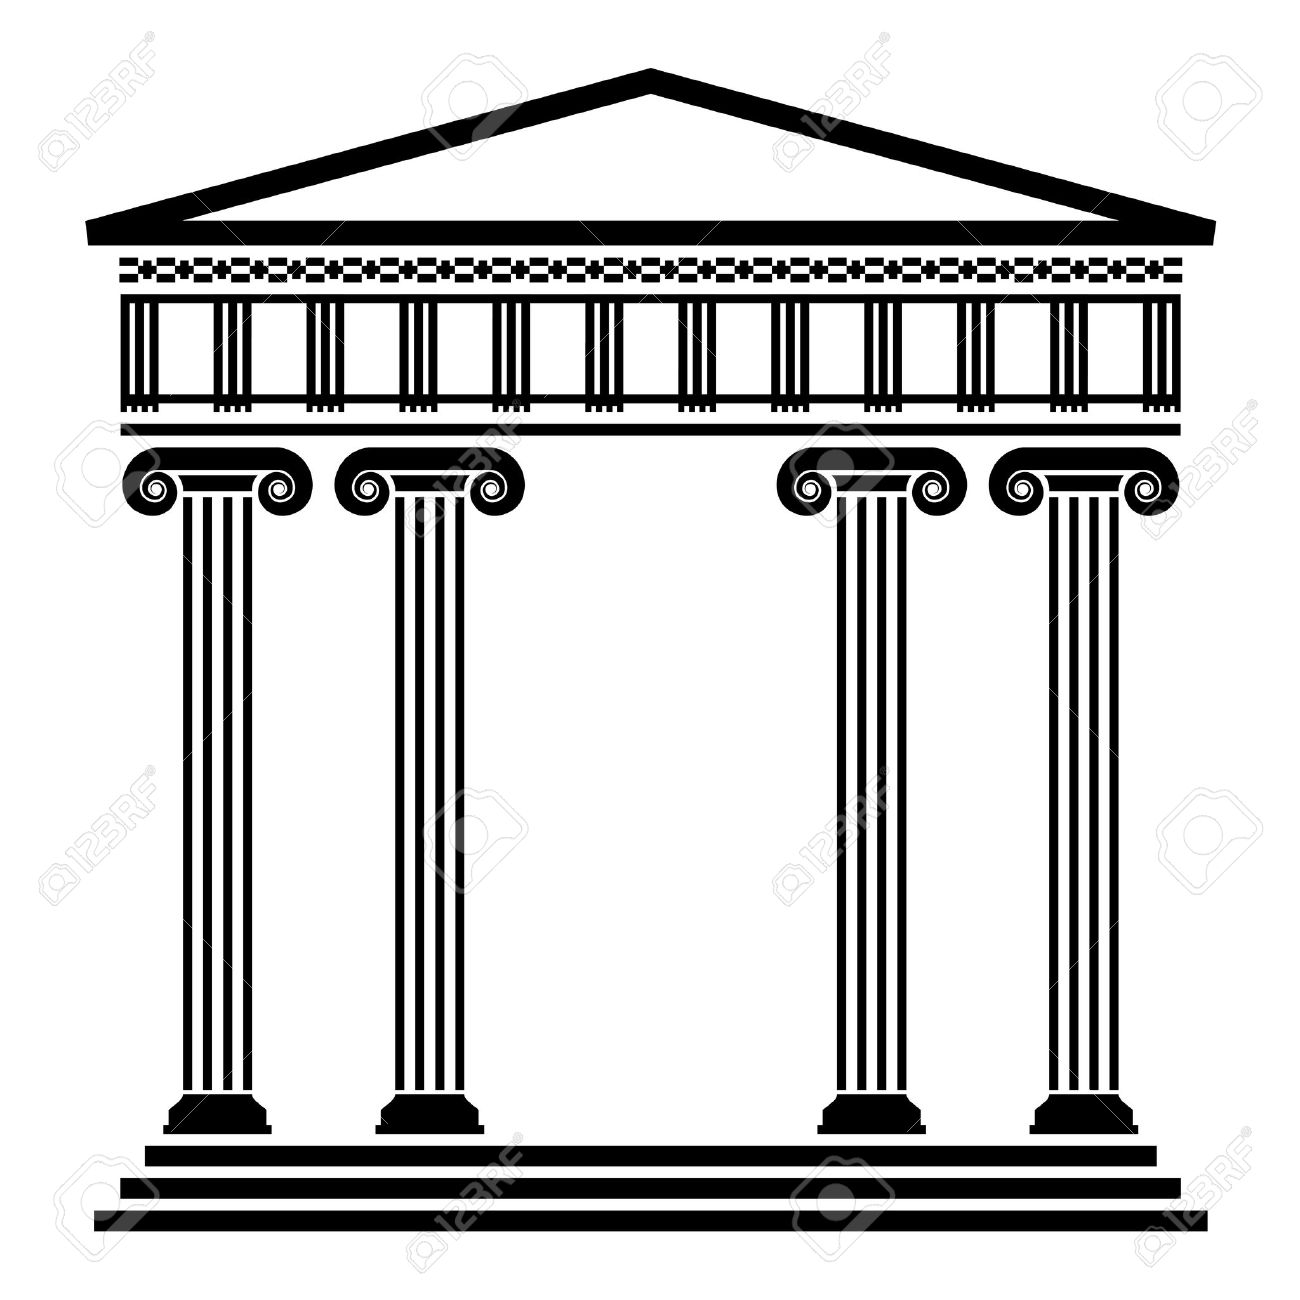 14 234 pillars stock vector illustration and royalty free pillars